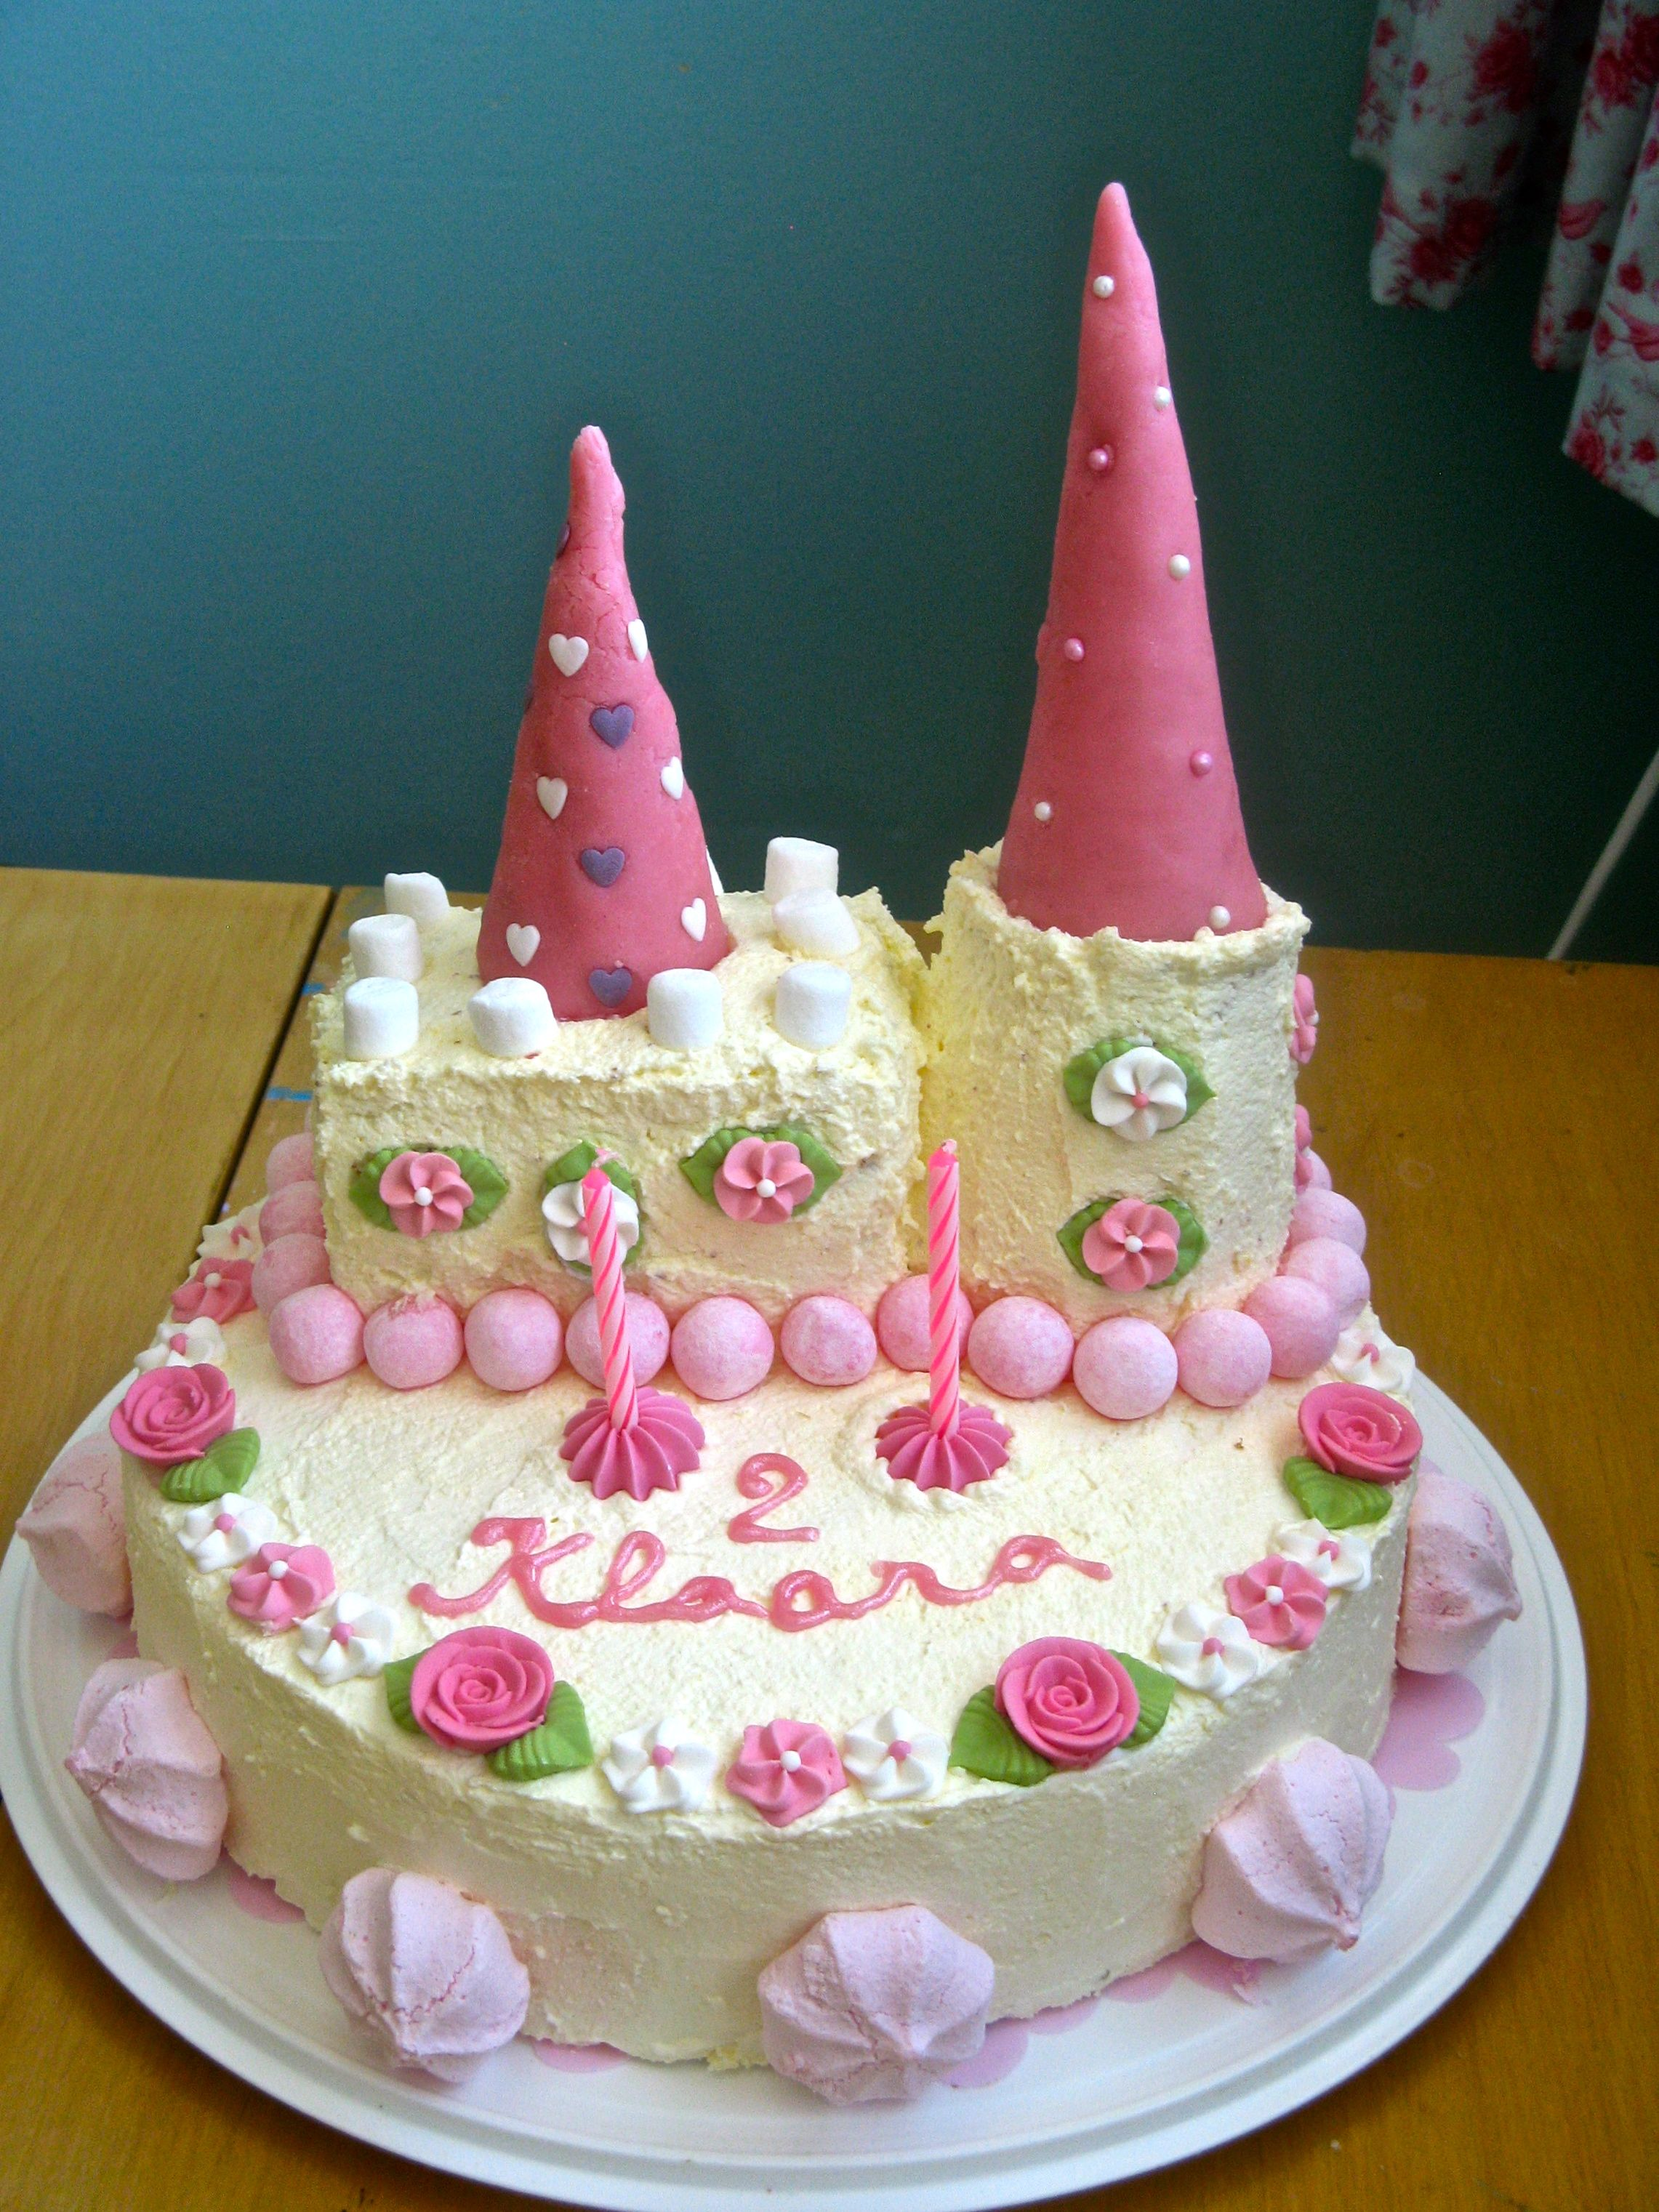 Miraculous My Little Girls 2Nd Birthday Cake Baked And Decorated By Her Funny Birthday Cards Online Barepcheapnameinfo